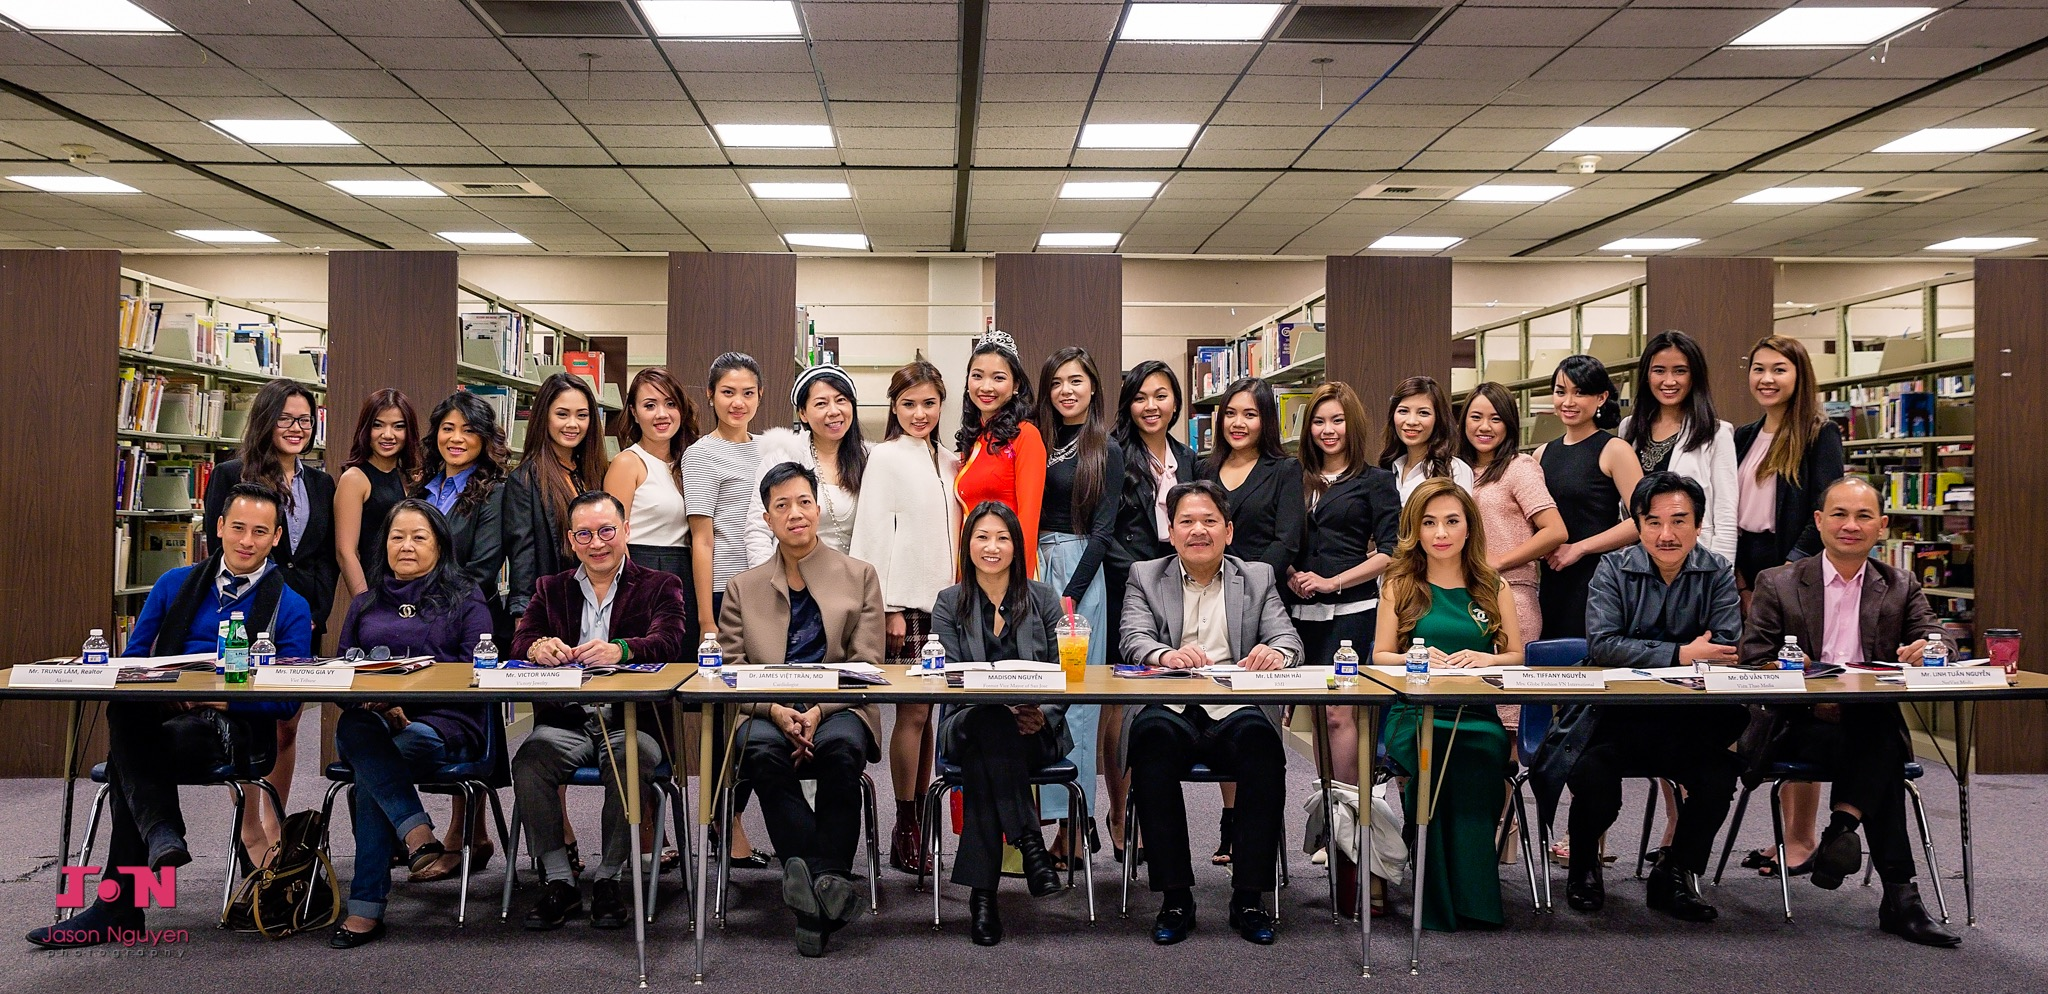 Miss Vietnam California 2016 Contestants Interview with the Judges - Image 115